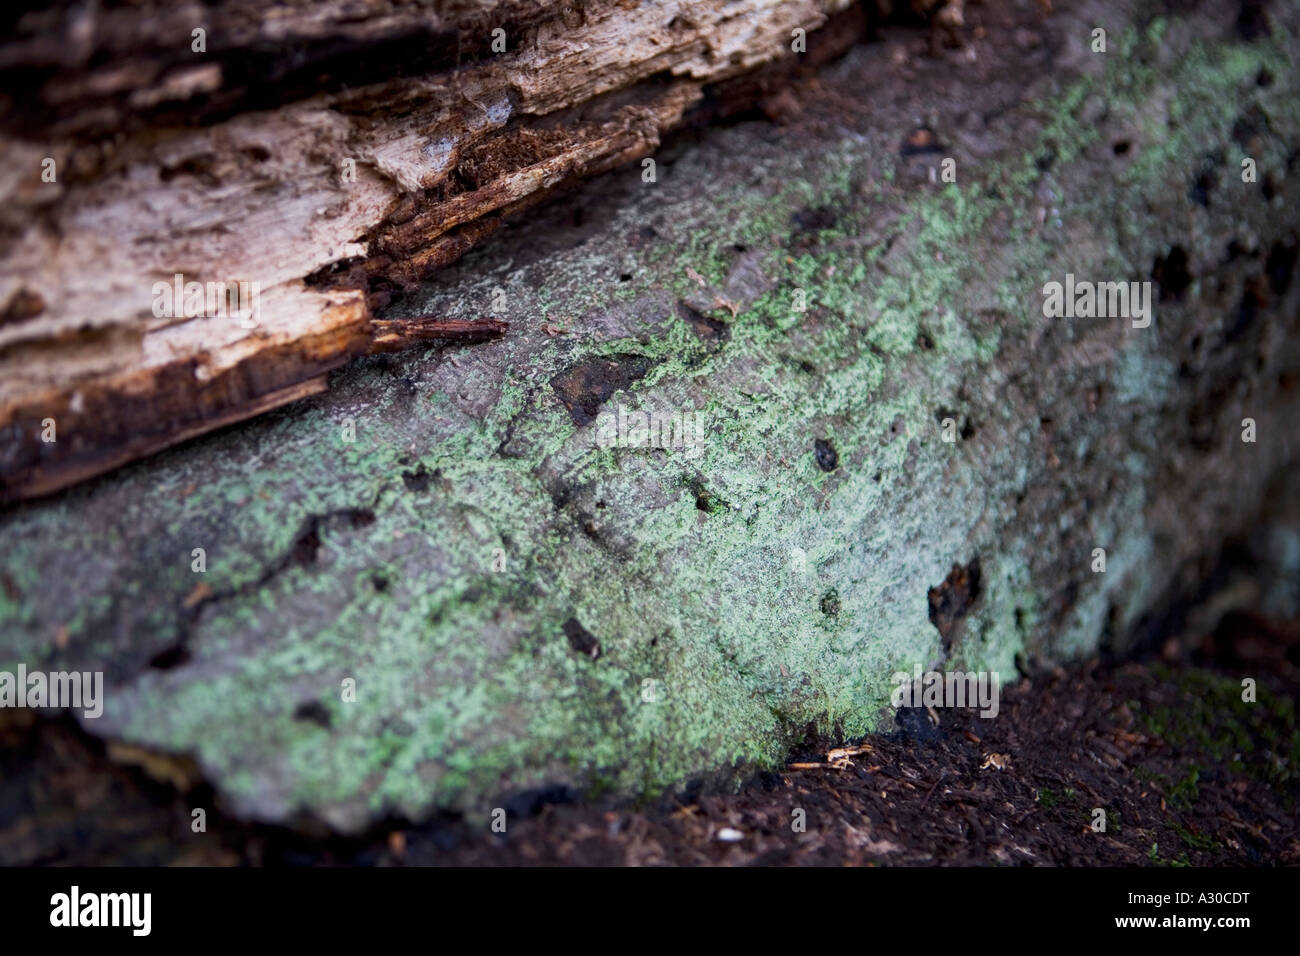 Green lichen growing on a fallen tree in Epping Forest - Stock Image